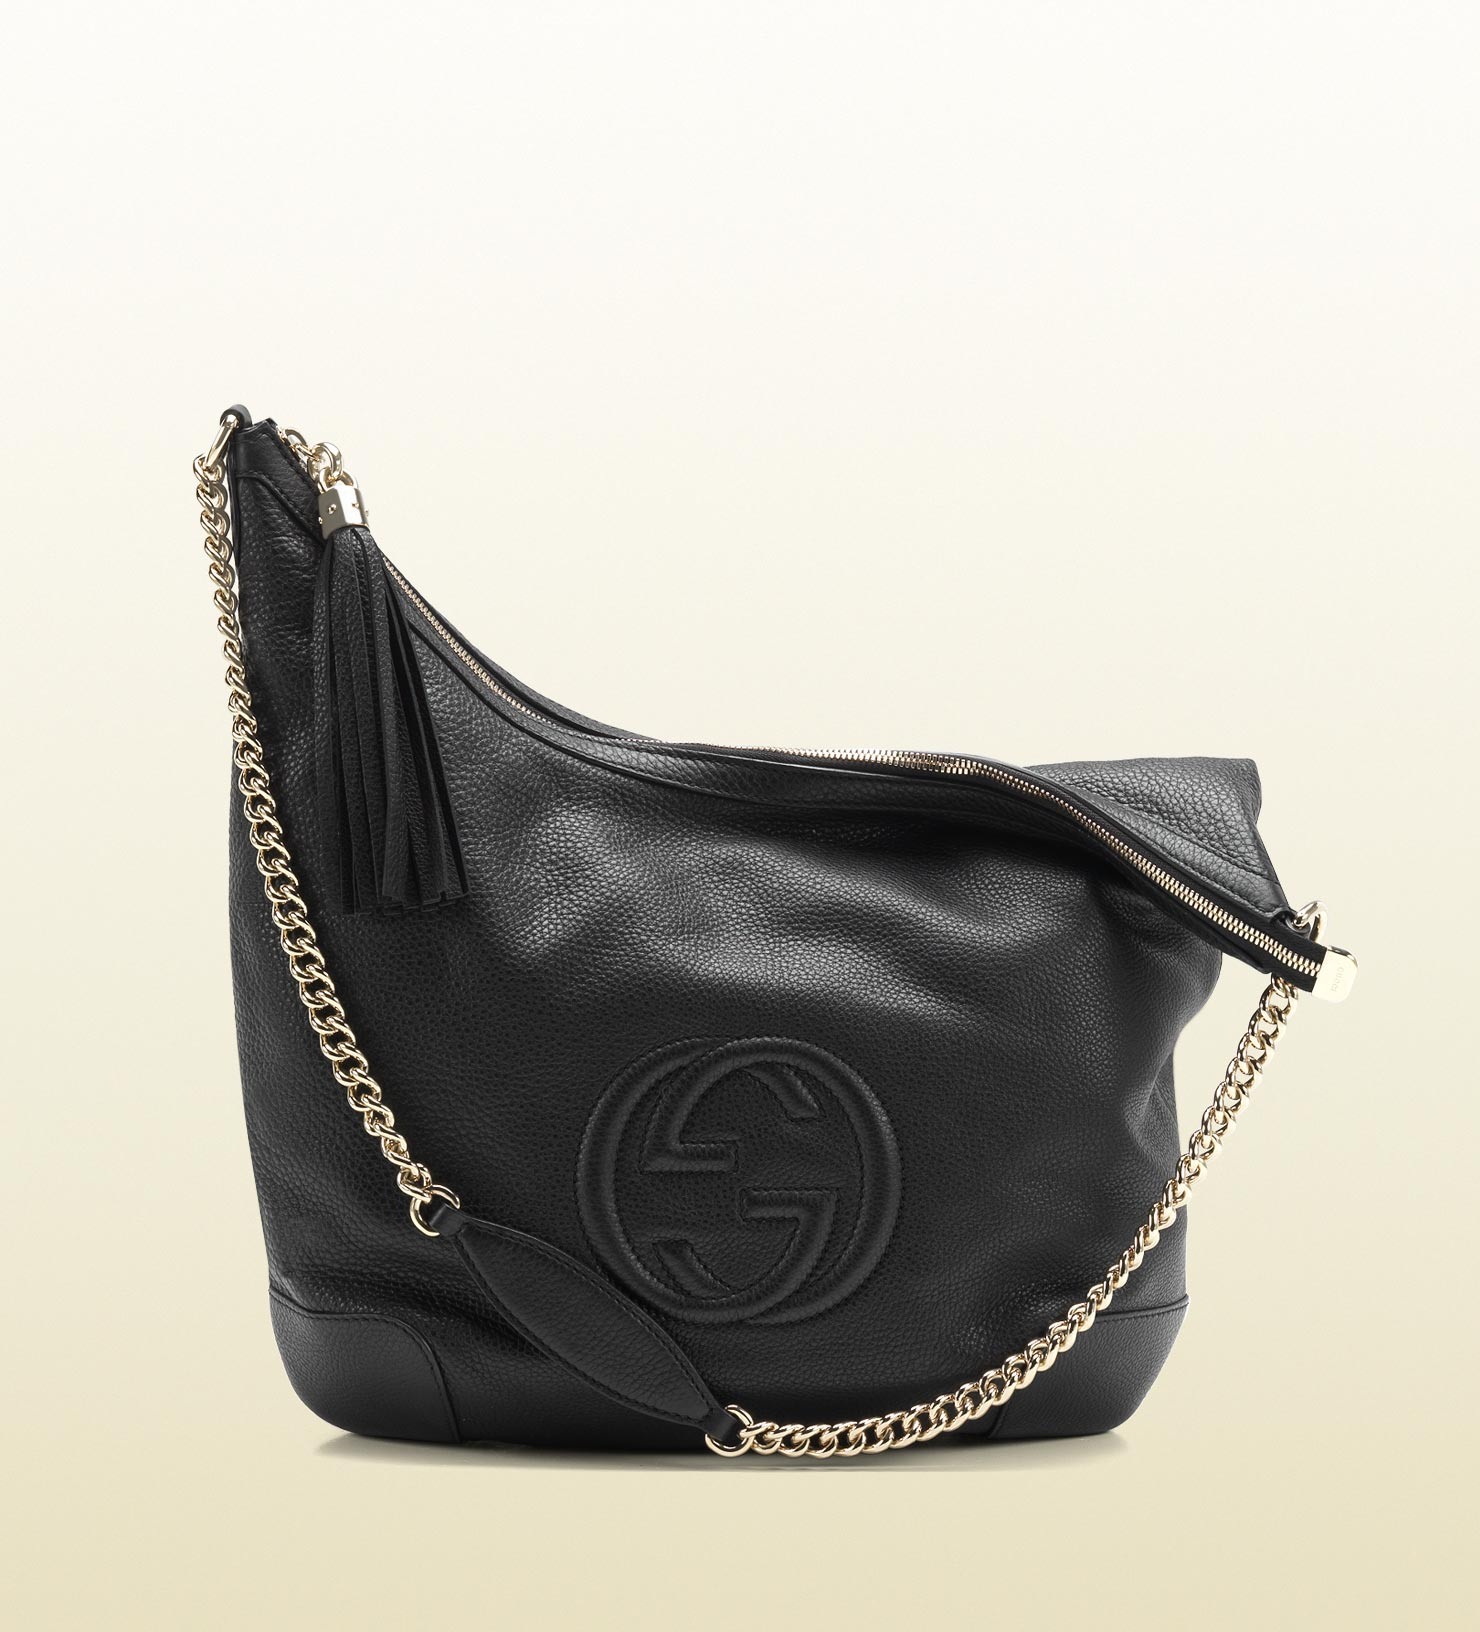 Gucci Soho Black Leather Shoulder Bag with Chain Strap in Black | Lyst